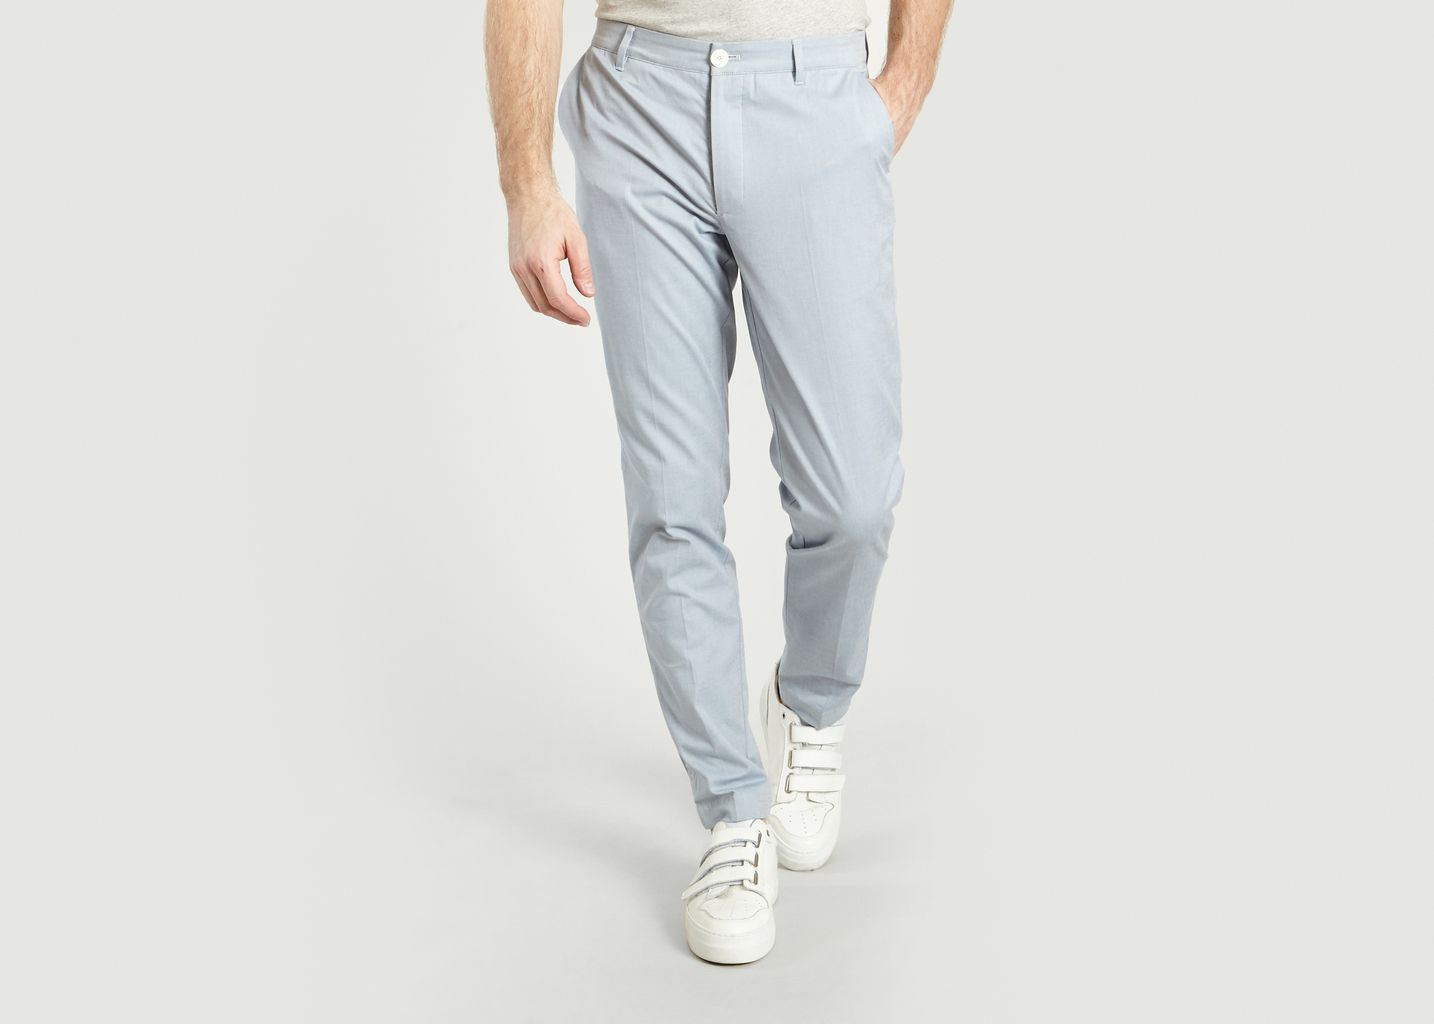 Straight GN6 Trousers - Commune de Paris